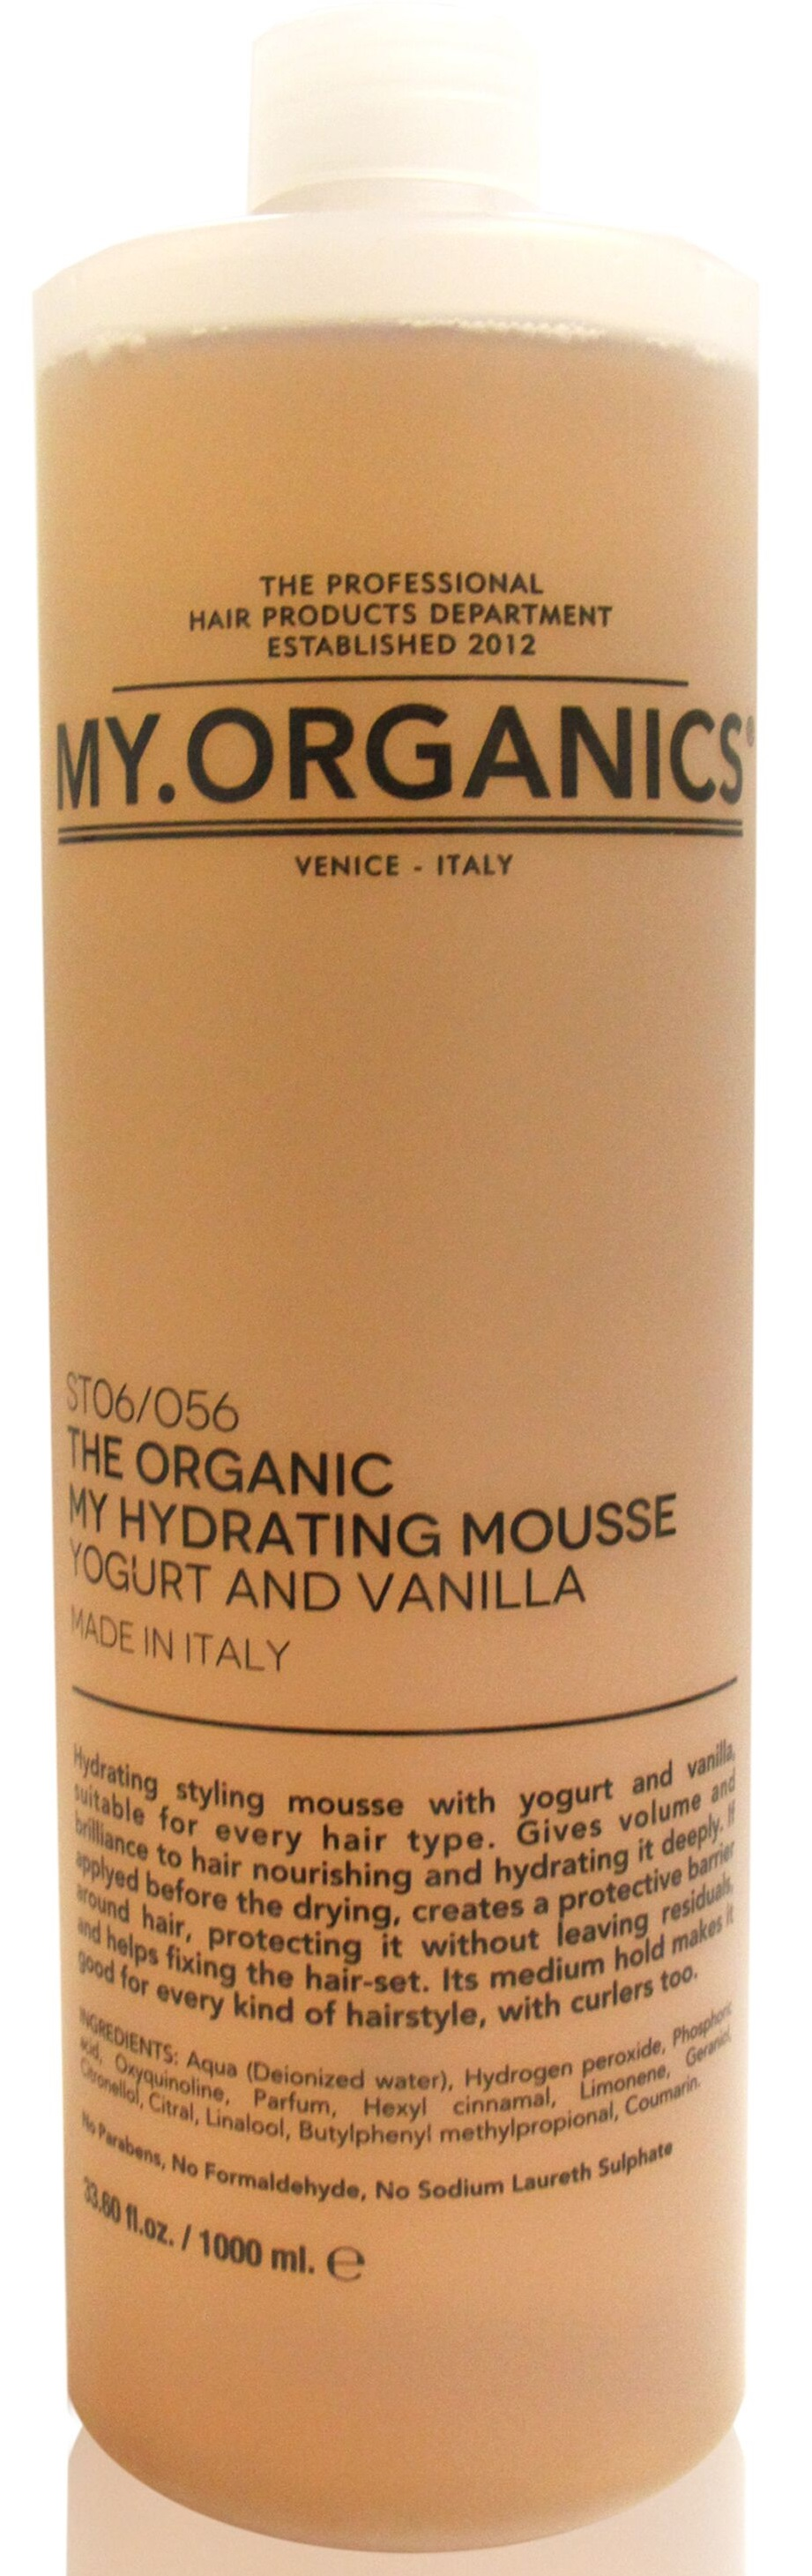 MY.ORGANICS The Organic My Hydrating Mousse Yogurt And Vanilla 1000ml